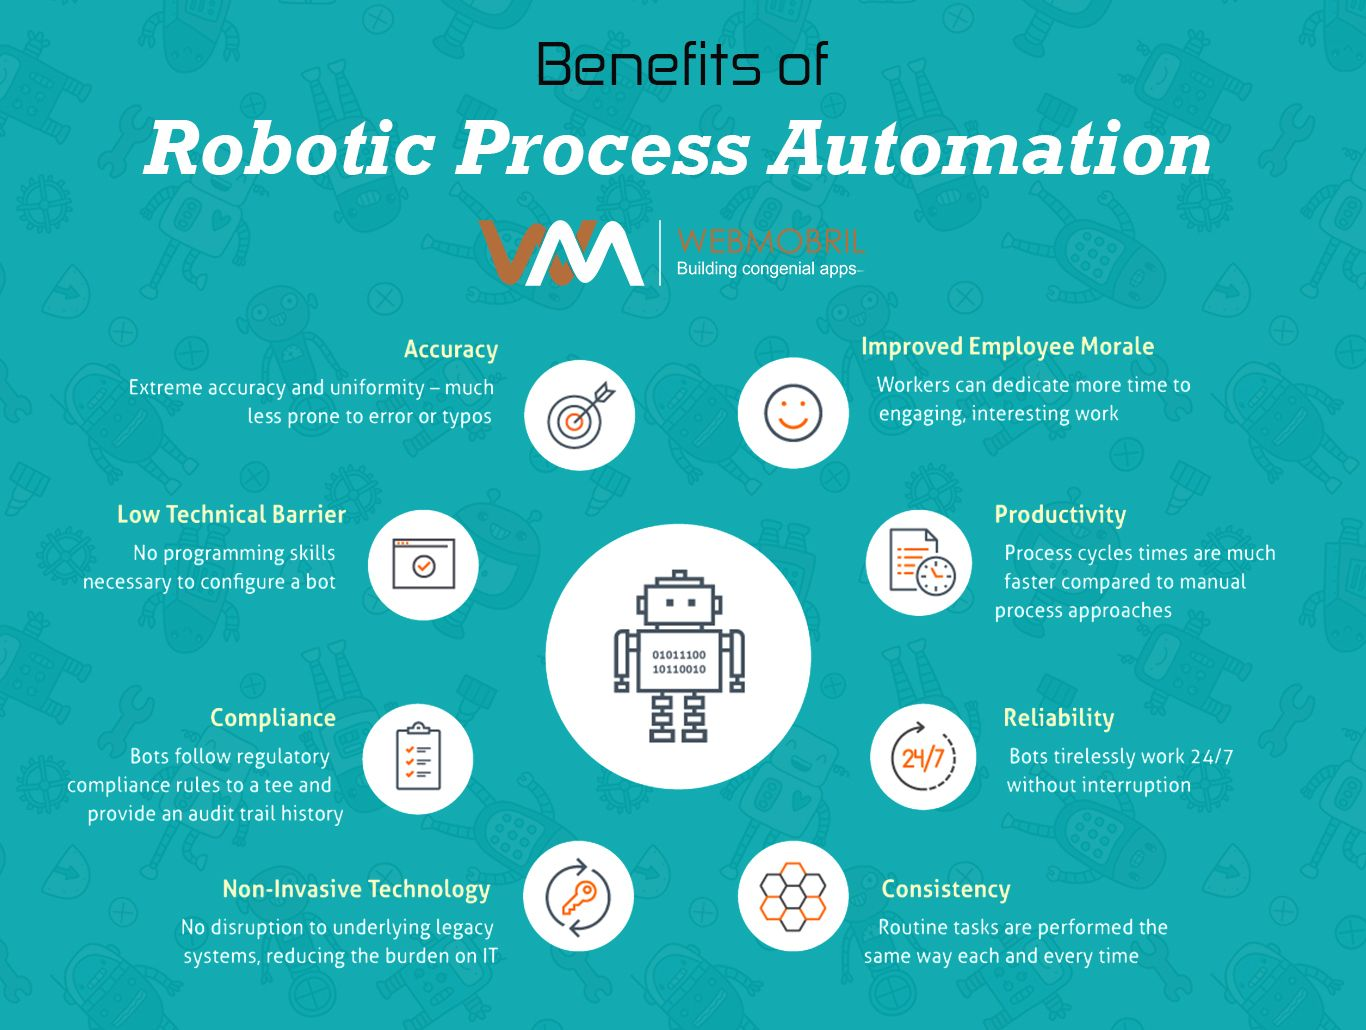 Automation Technology: The Complete Guide To Robotic Process Automation In 2019